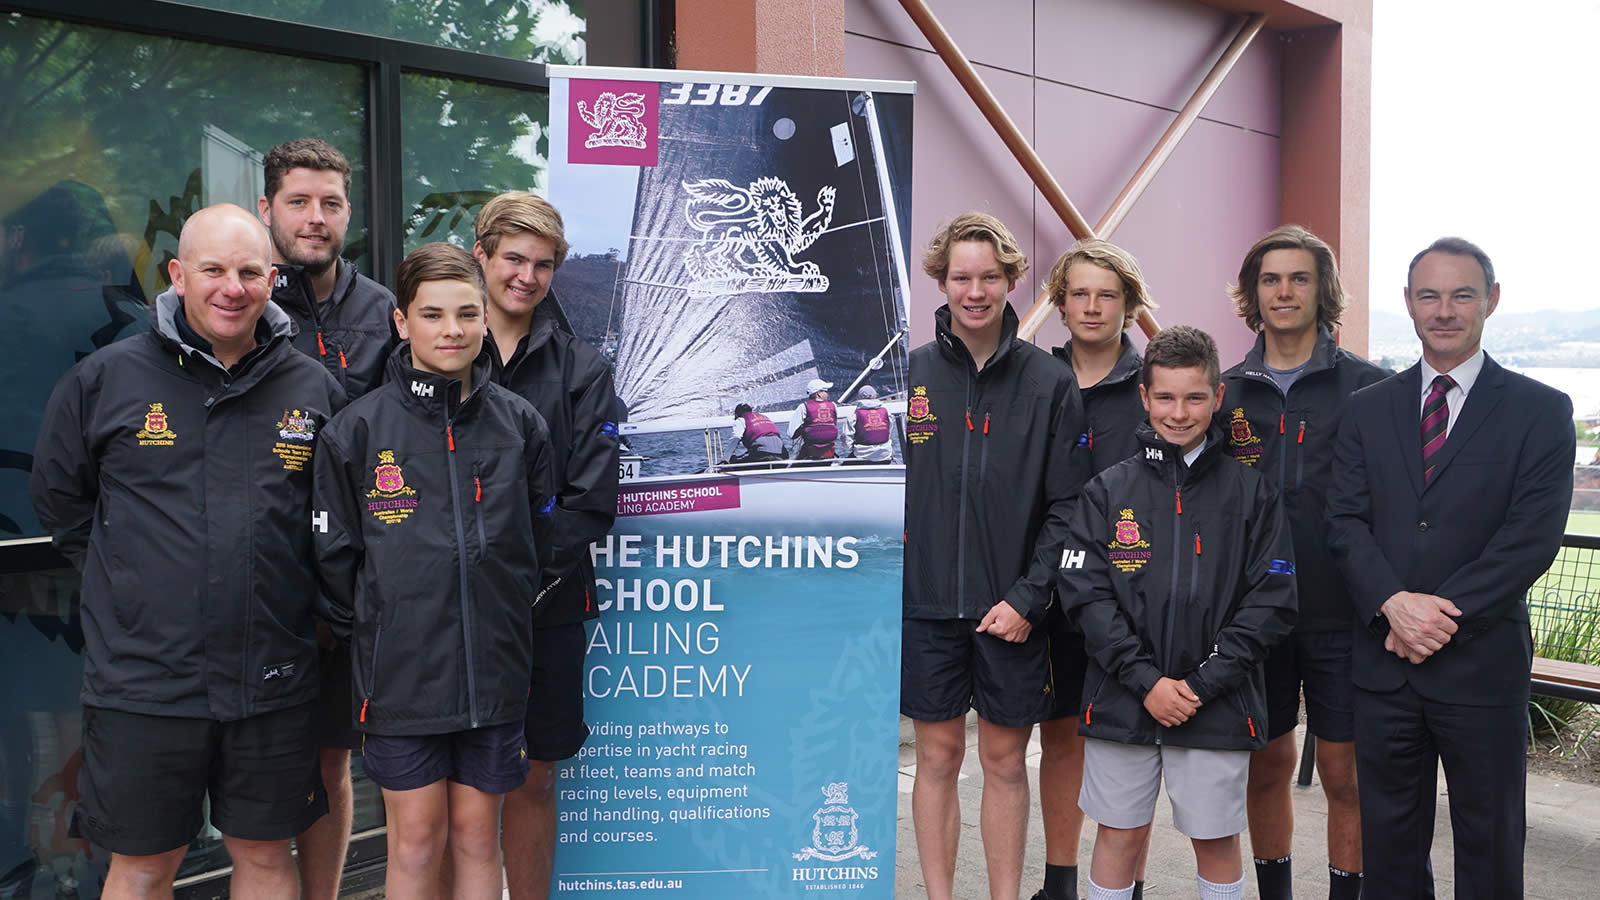 Mr Greg Rowlings, Mr Robbie Tuck,  Howard Tapping (Year 8), Jack Allison (Year 8), Finn McLagan (Year 9), Oliver Hugo (Year 7), Charles Zeeman (Year 9) and Dr Rob McEwan. Absent – Benjamin Boman (Year 8).